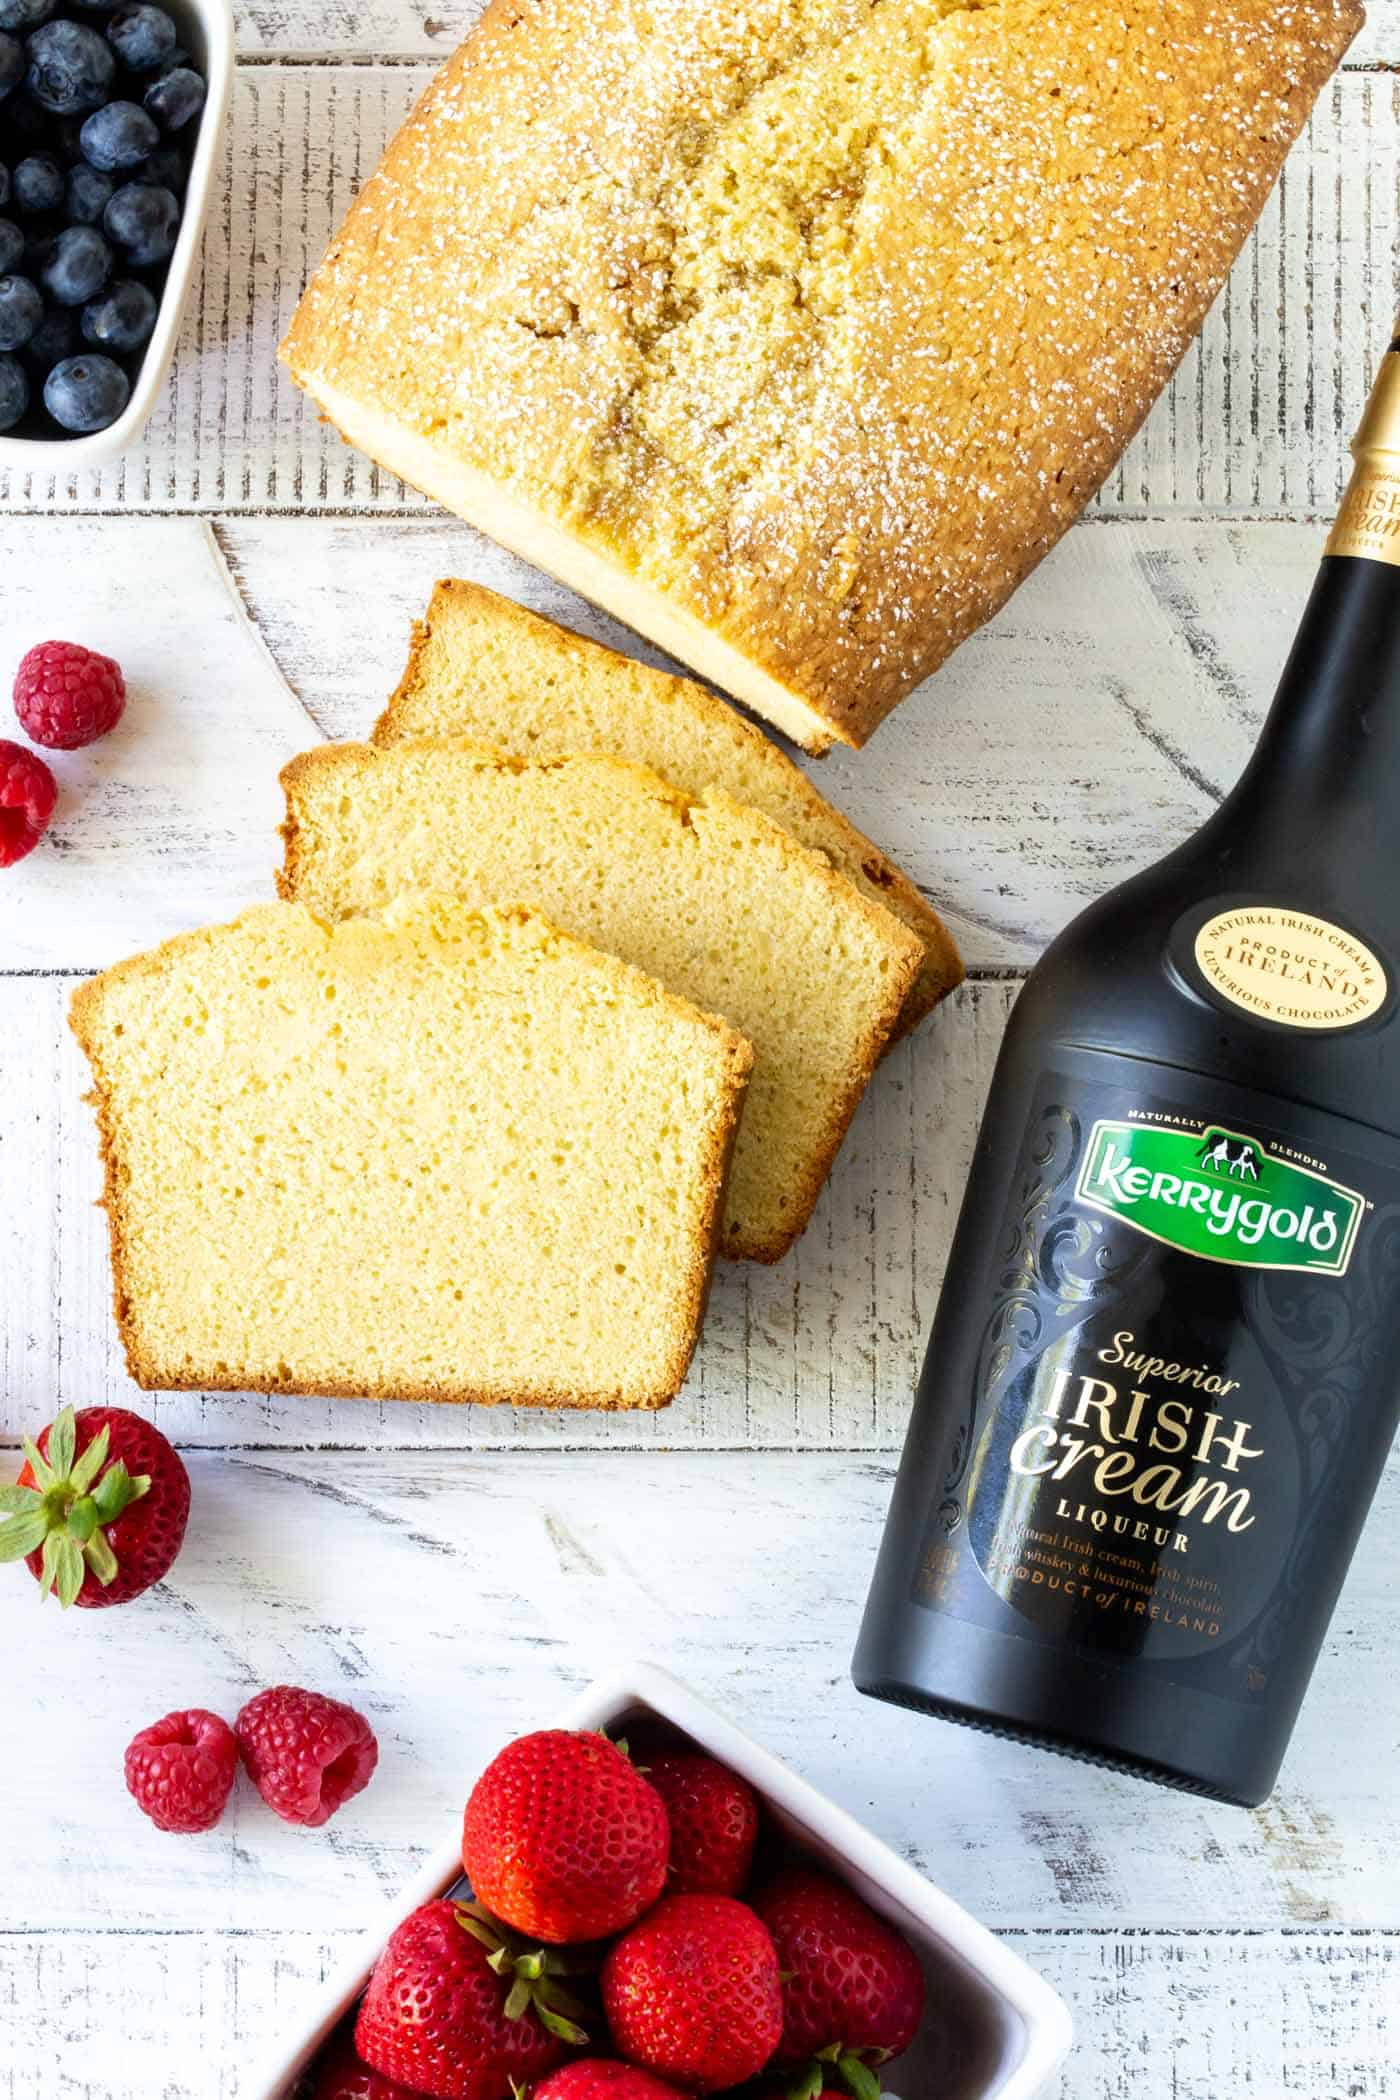 Slices of Irish Cream Pound Cake surrounded by fresh berries and a bottle of Kerrygold Irish Cream Liqueur.